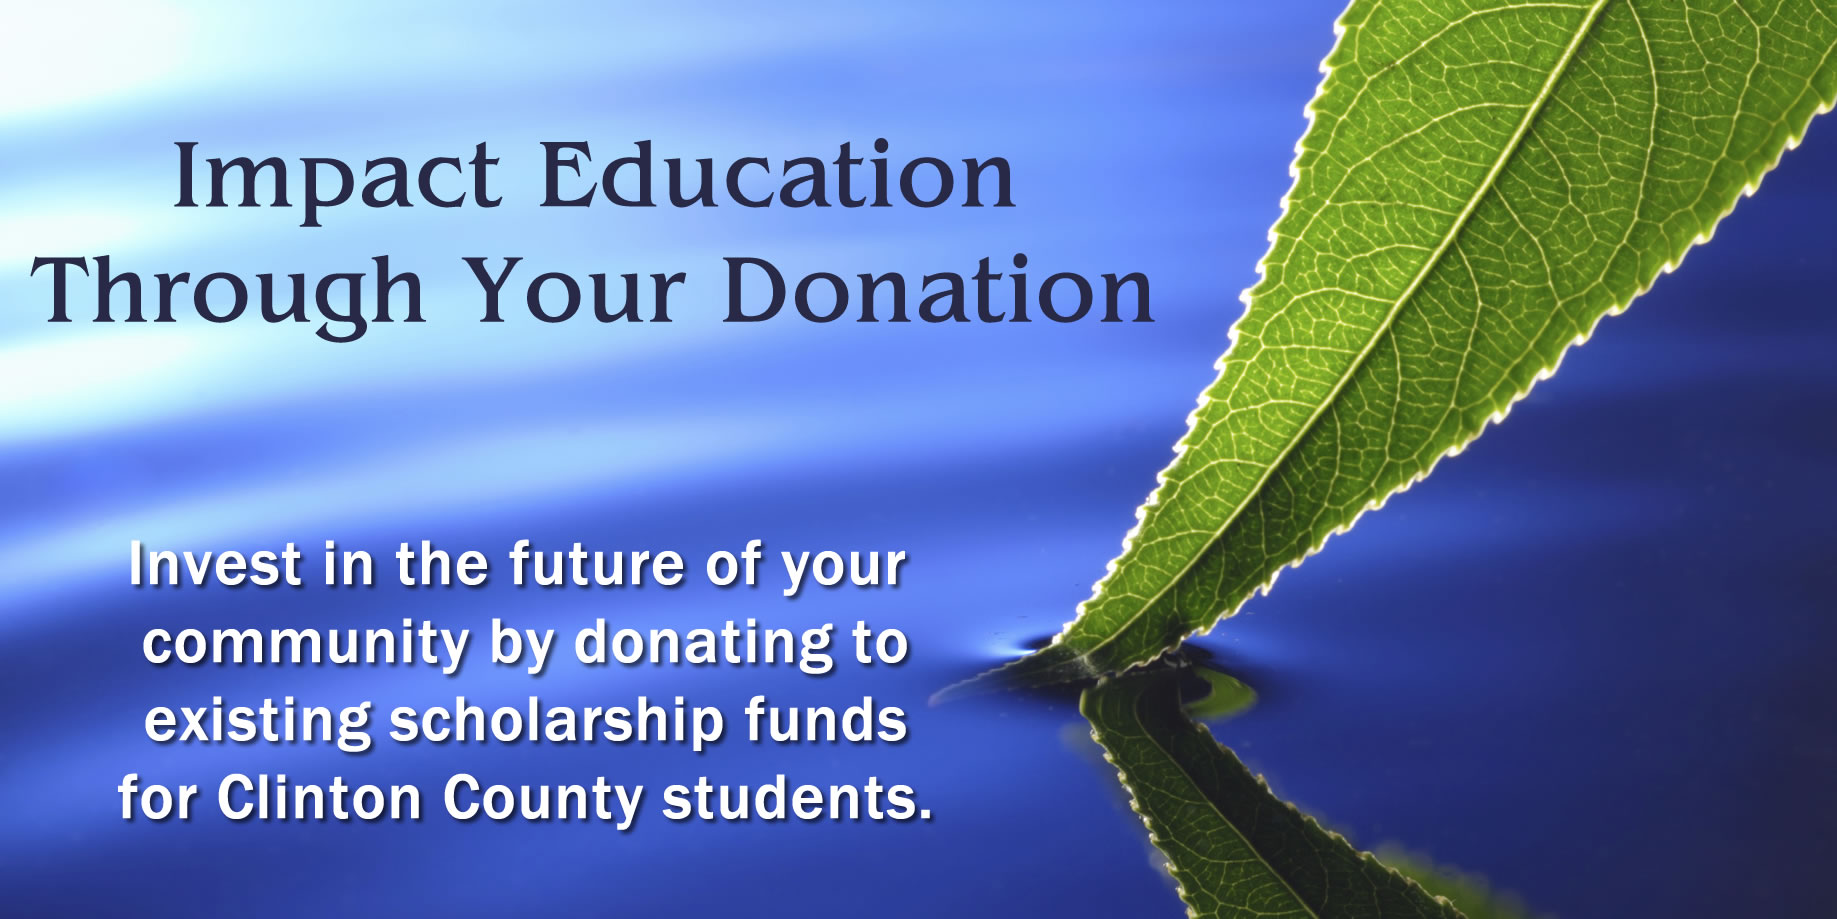 Scholarship Funds